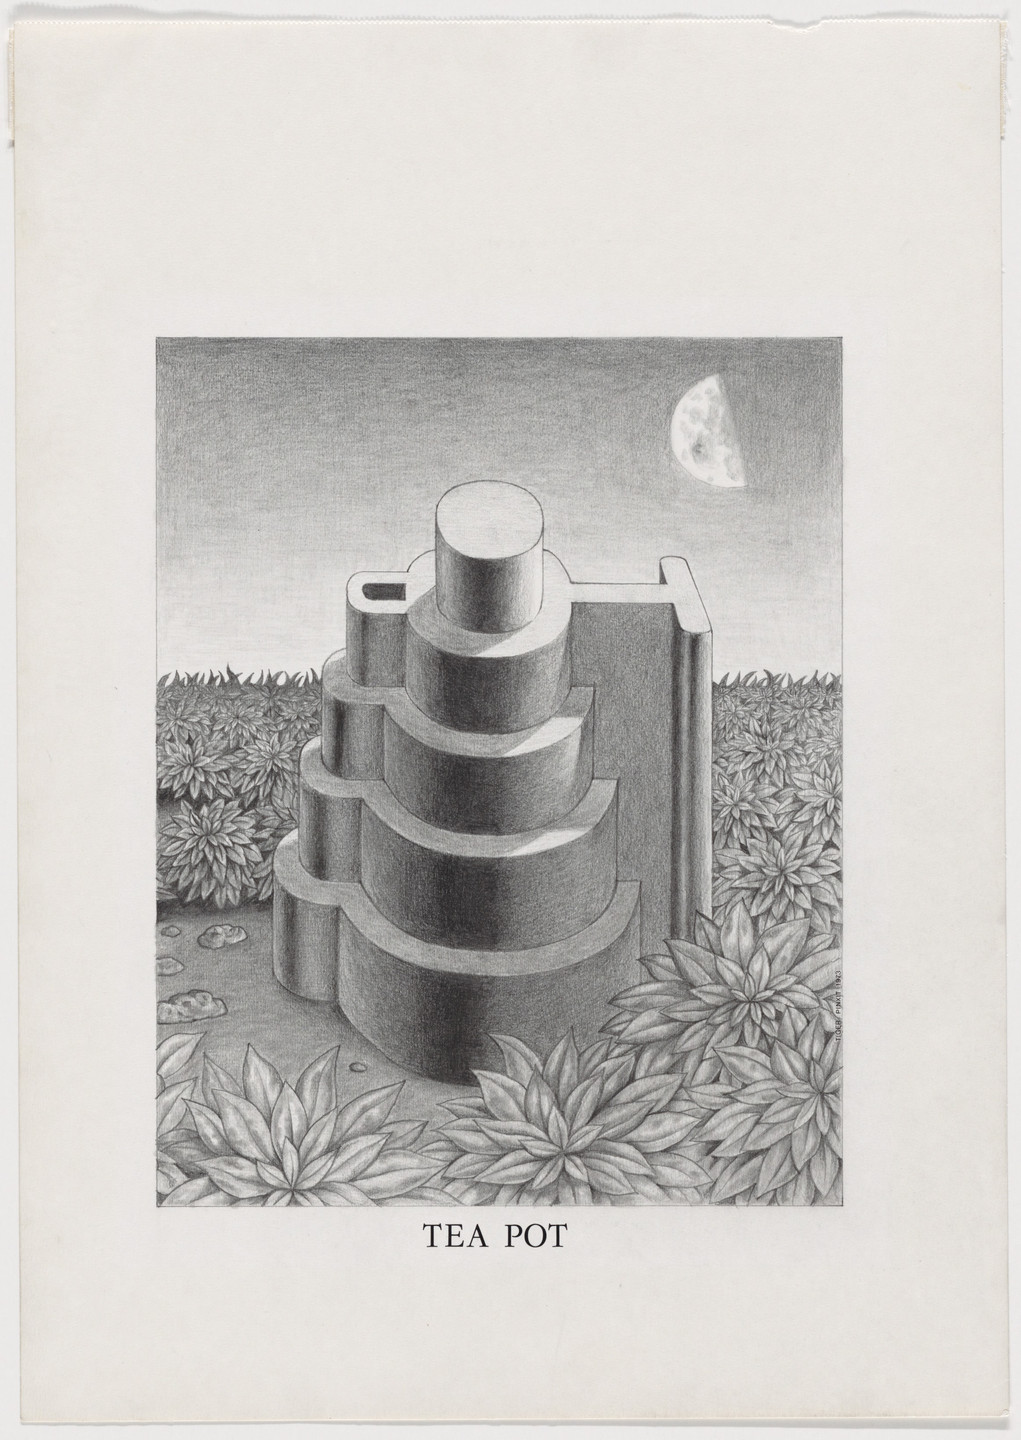 Ettore Sottsass. Study for Tea Pot, project (Perspective). 1973